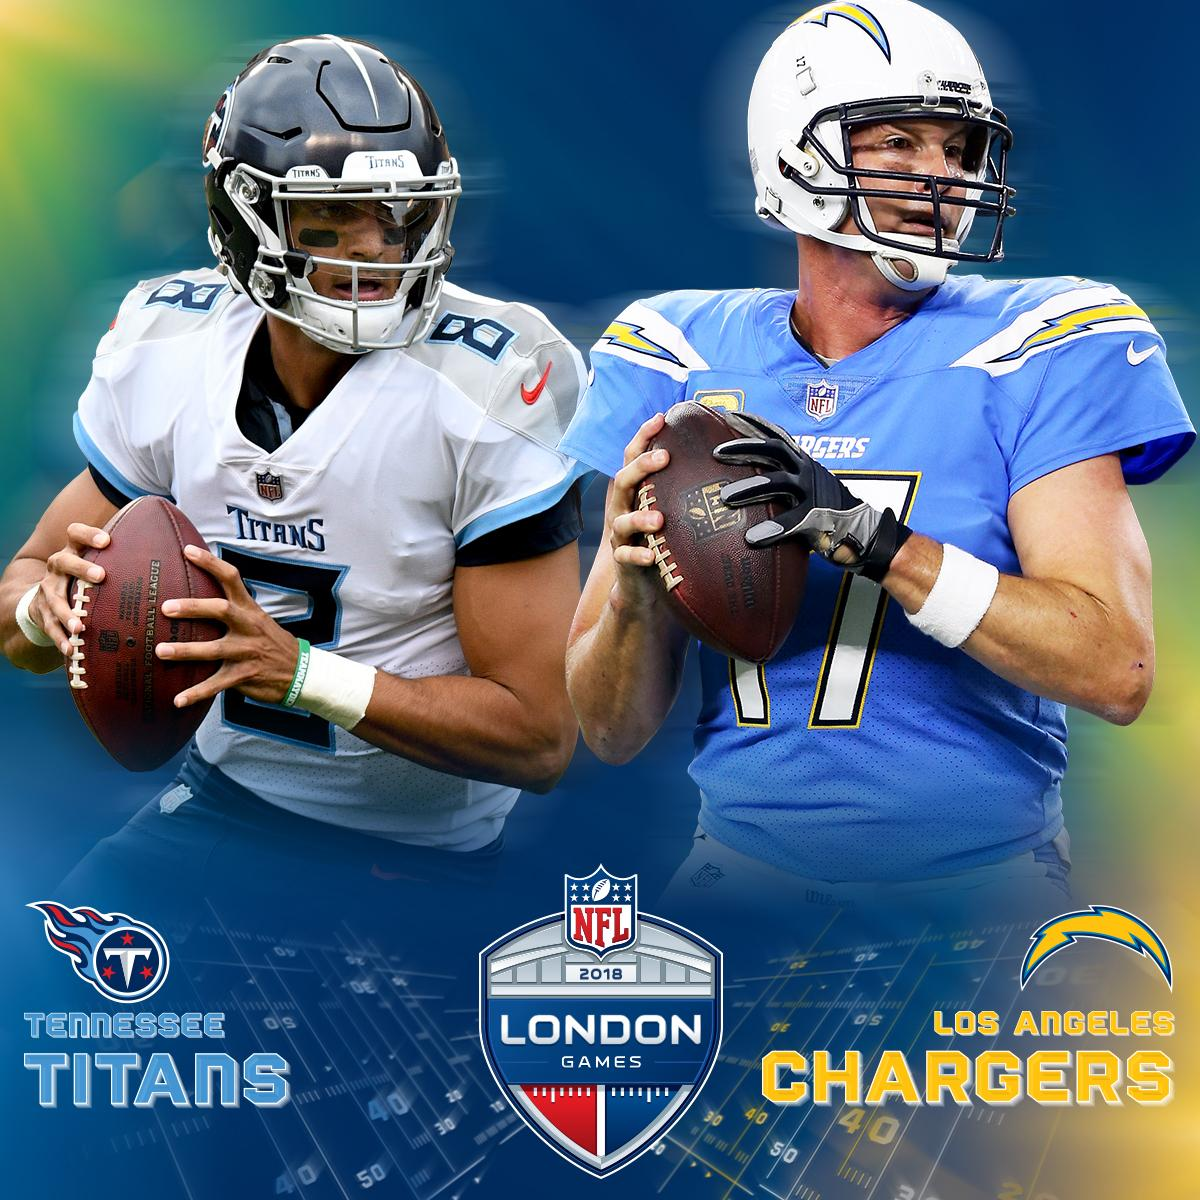 .@Titans vs. @Chargers LIVE from London! 🇬🇧  NEXT on CBS (9:30am ET). 🙌 #TENvsLAC @NFLUK